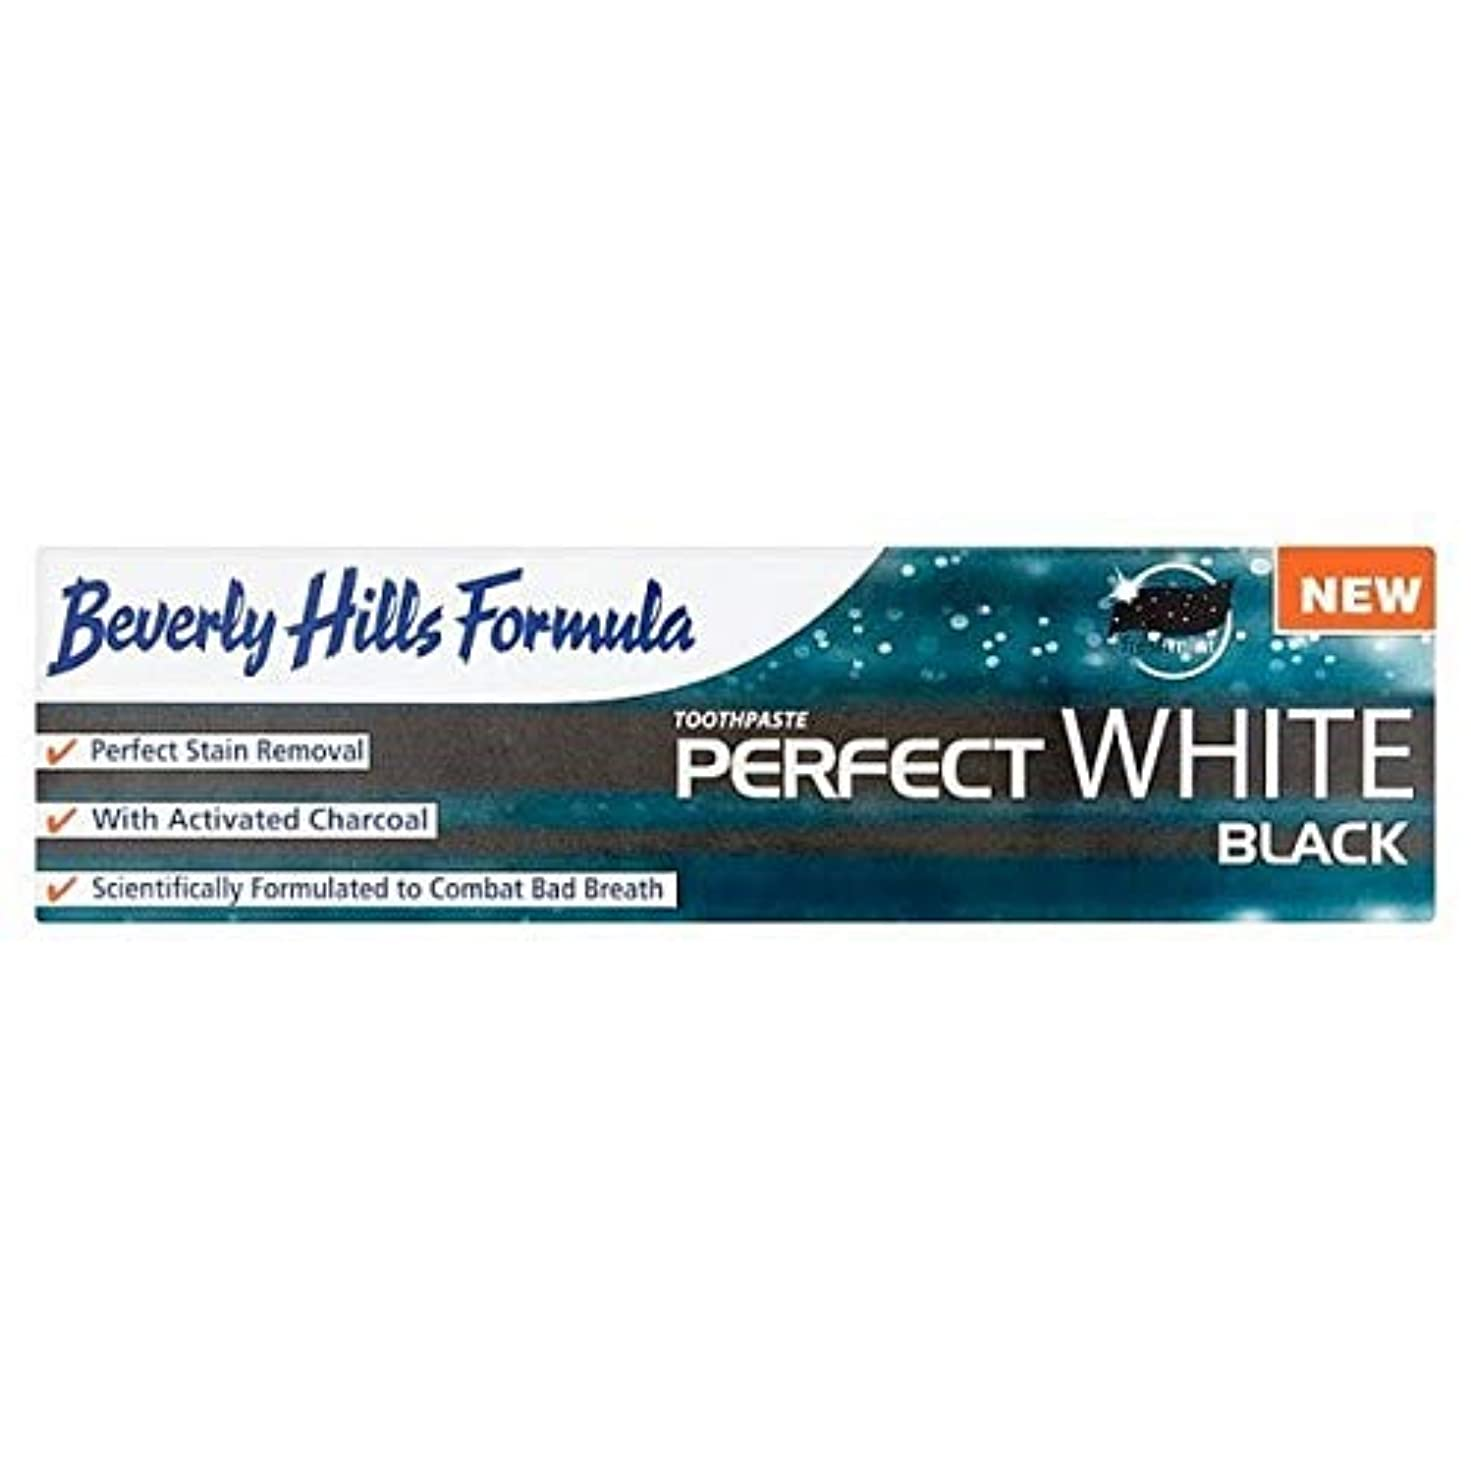 [Beverly Hills ] ビバリーヒルズ式活性炭歯磨き粉100ミリリットル - Beverly Hills Formula Activated Charcoal Toothpaste 100ml [並行輸入品]